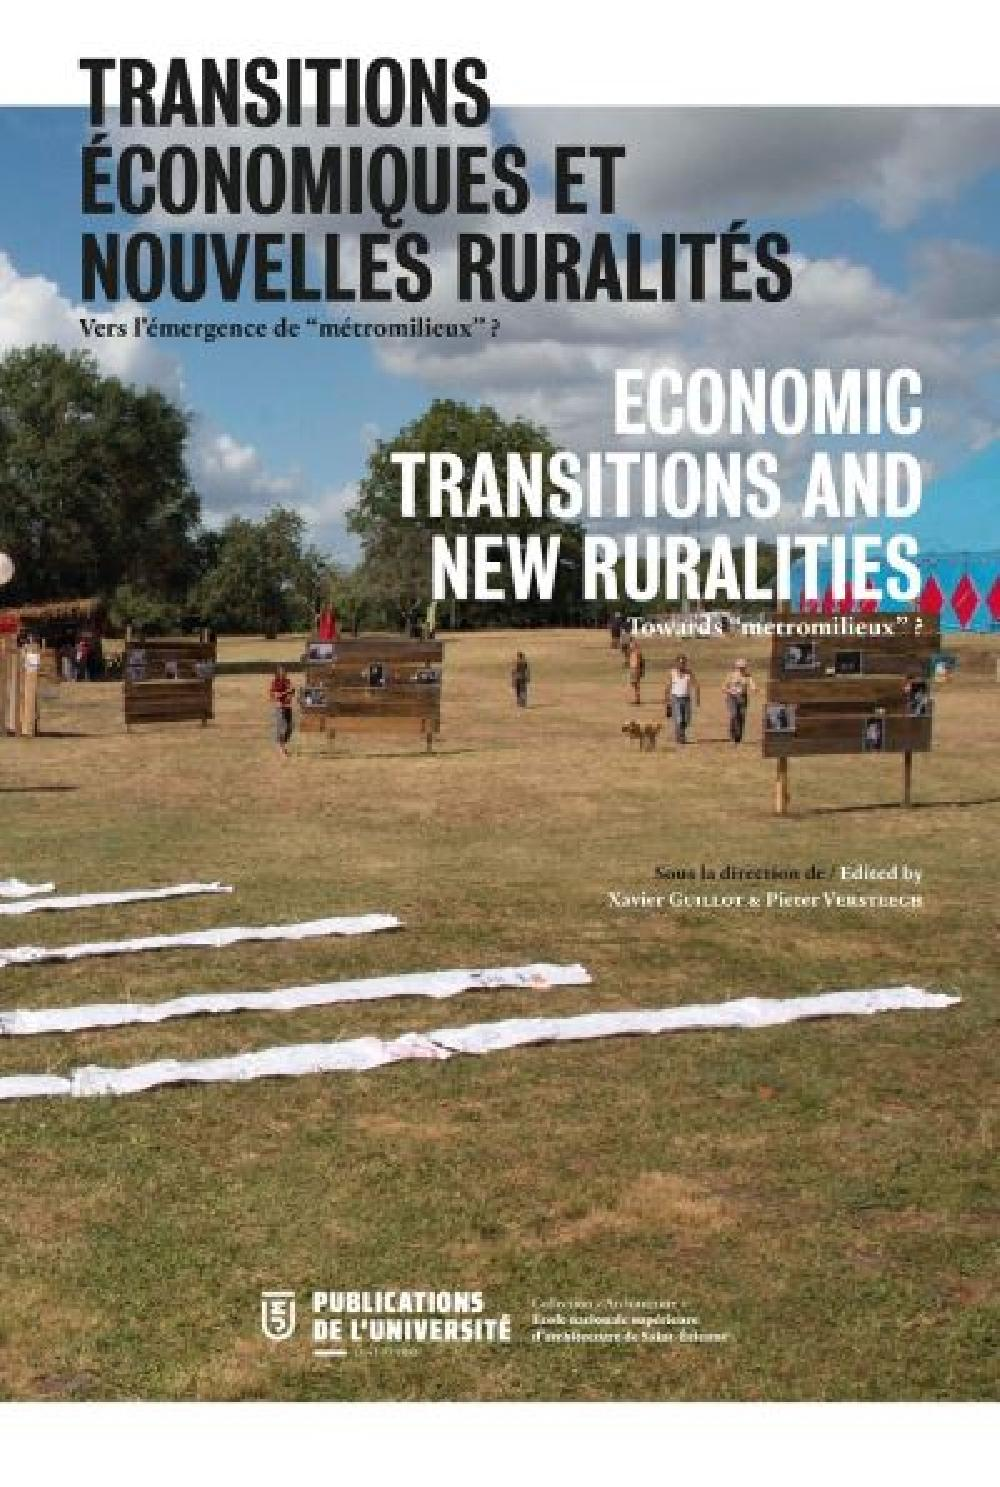 """Economic transitions and new ruralities / Towards """"metromilieux"""""""